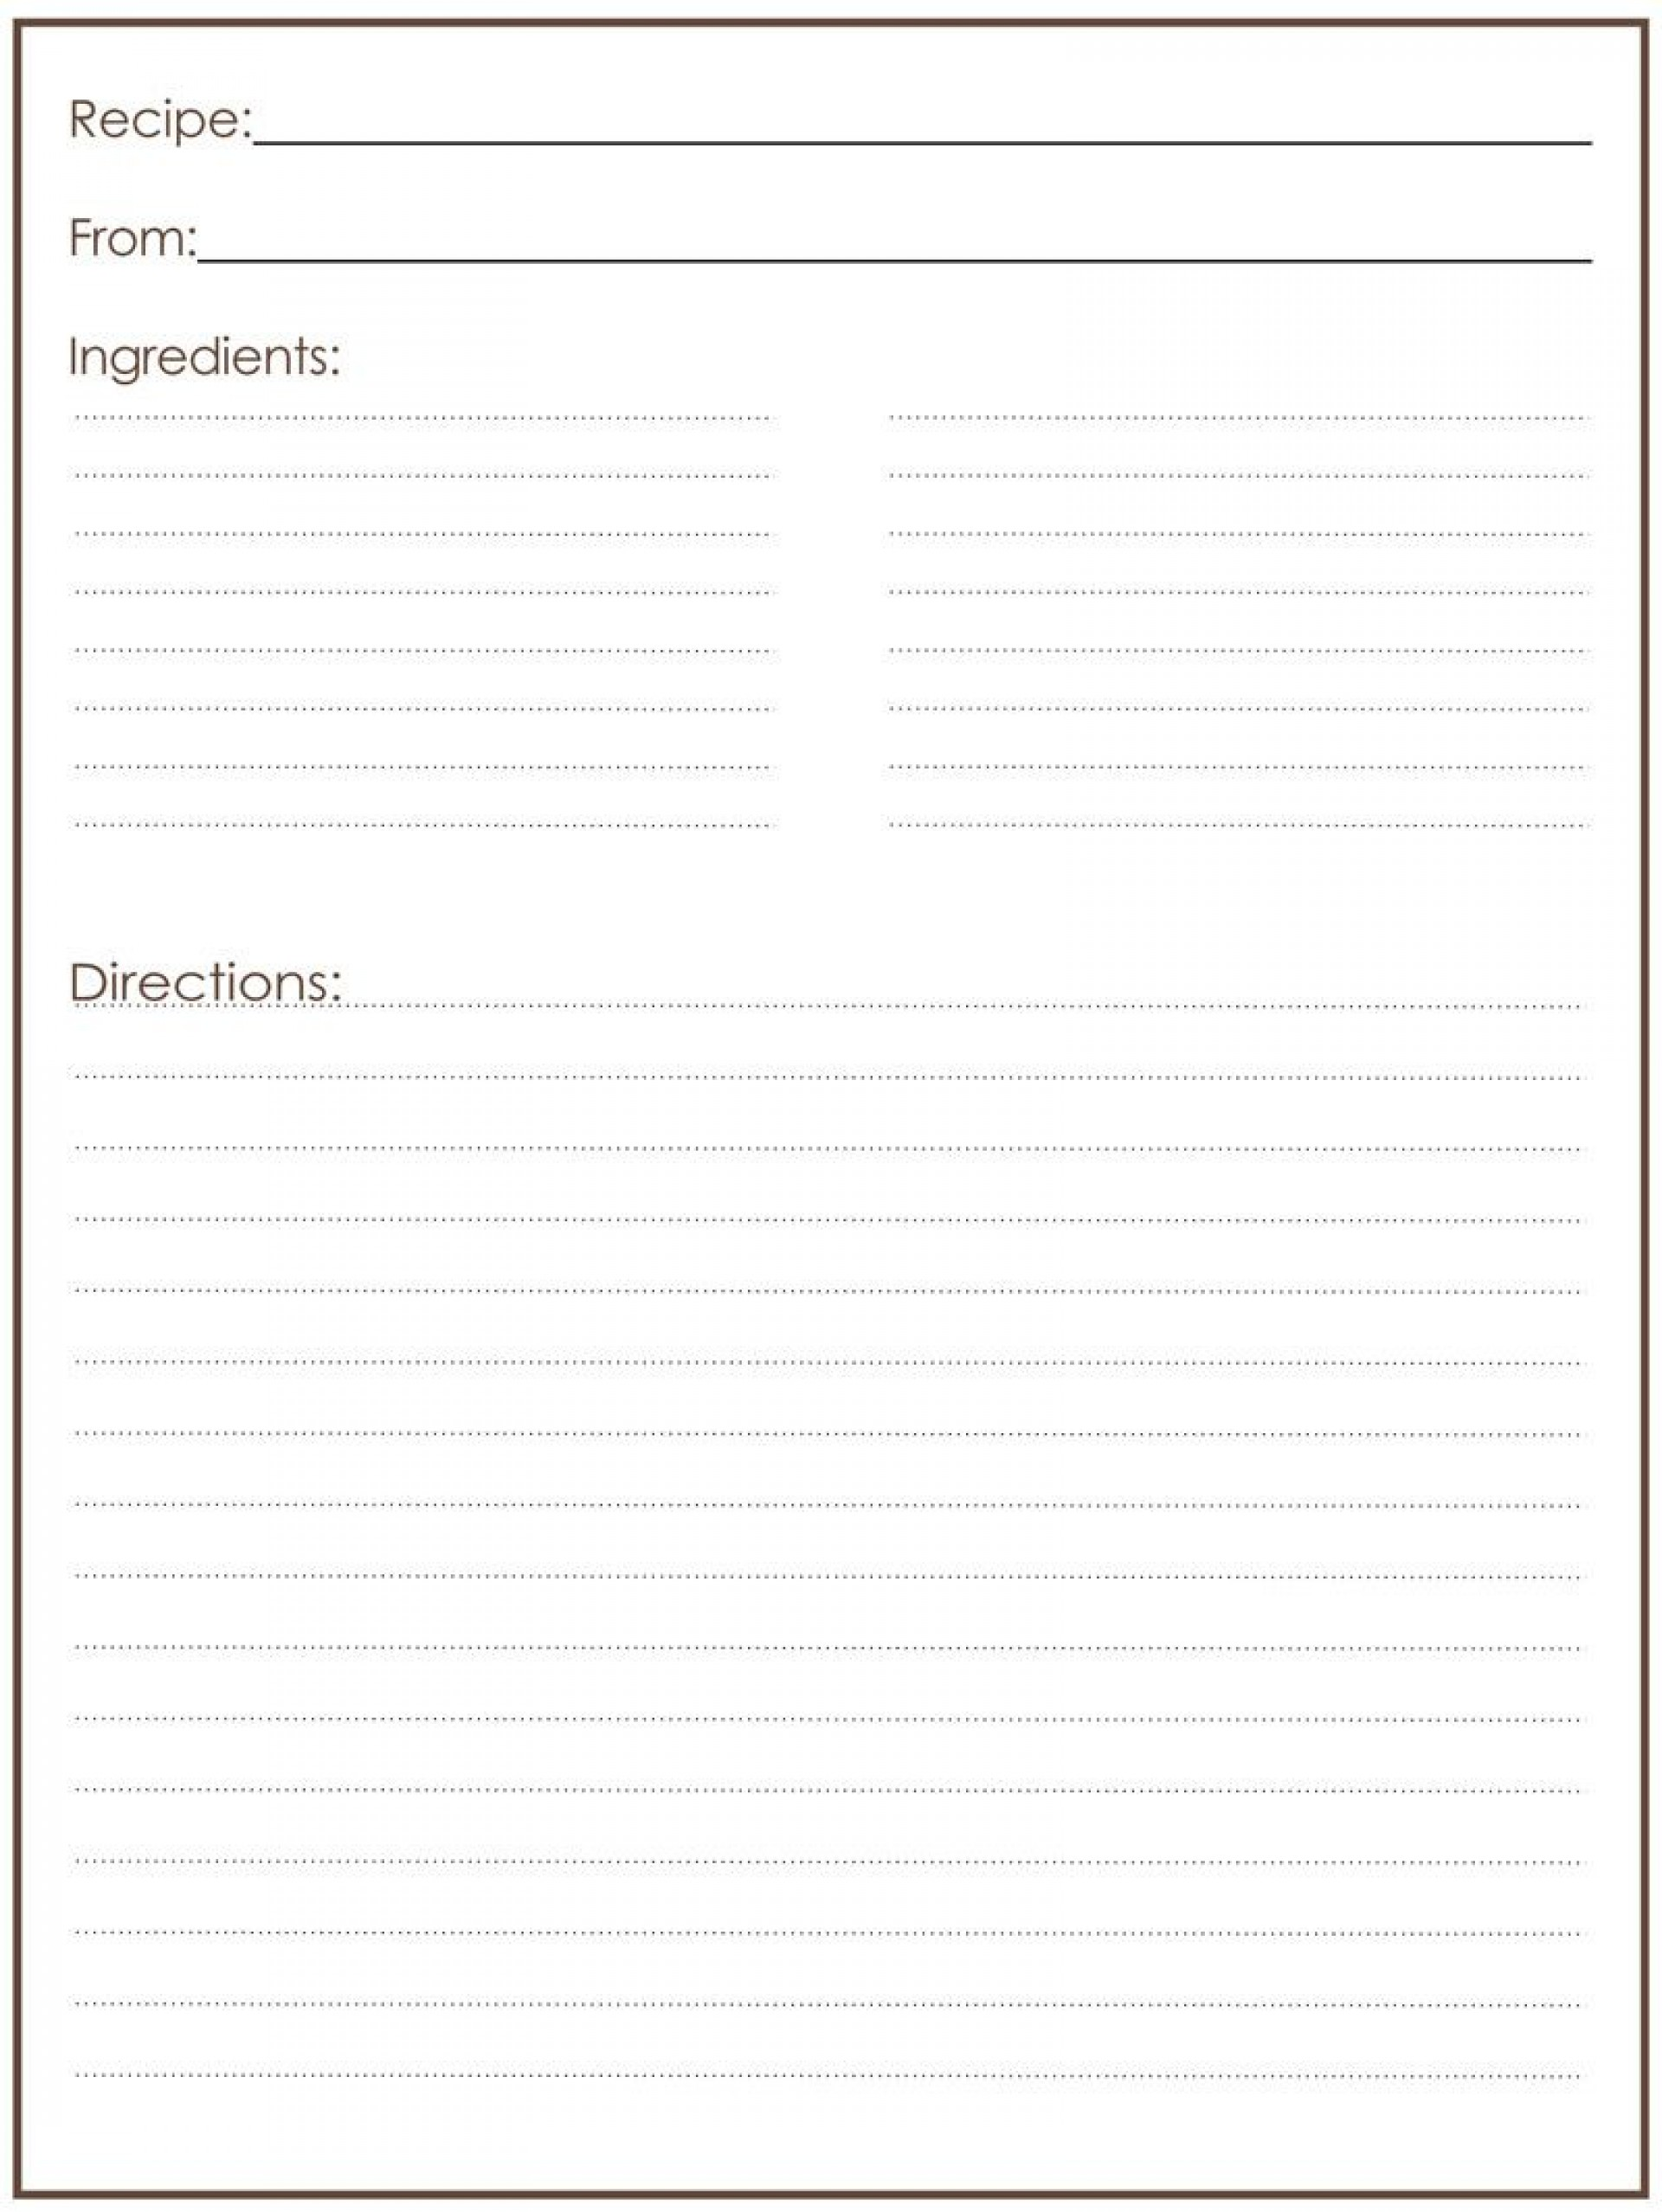 004 Stunning M Word Recipe Template Example  Microsoft Card 2010 Full Page1920